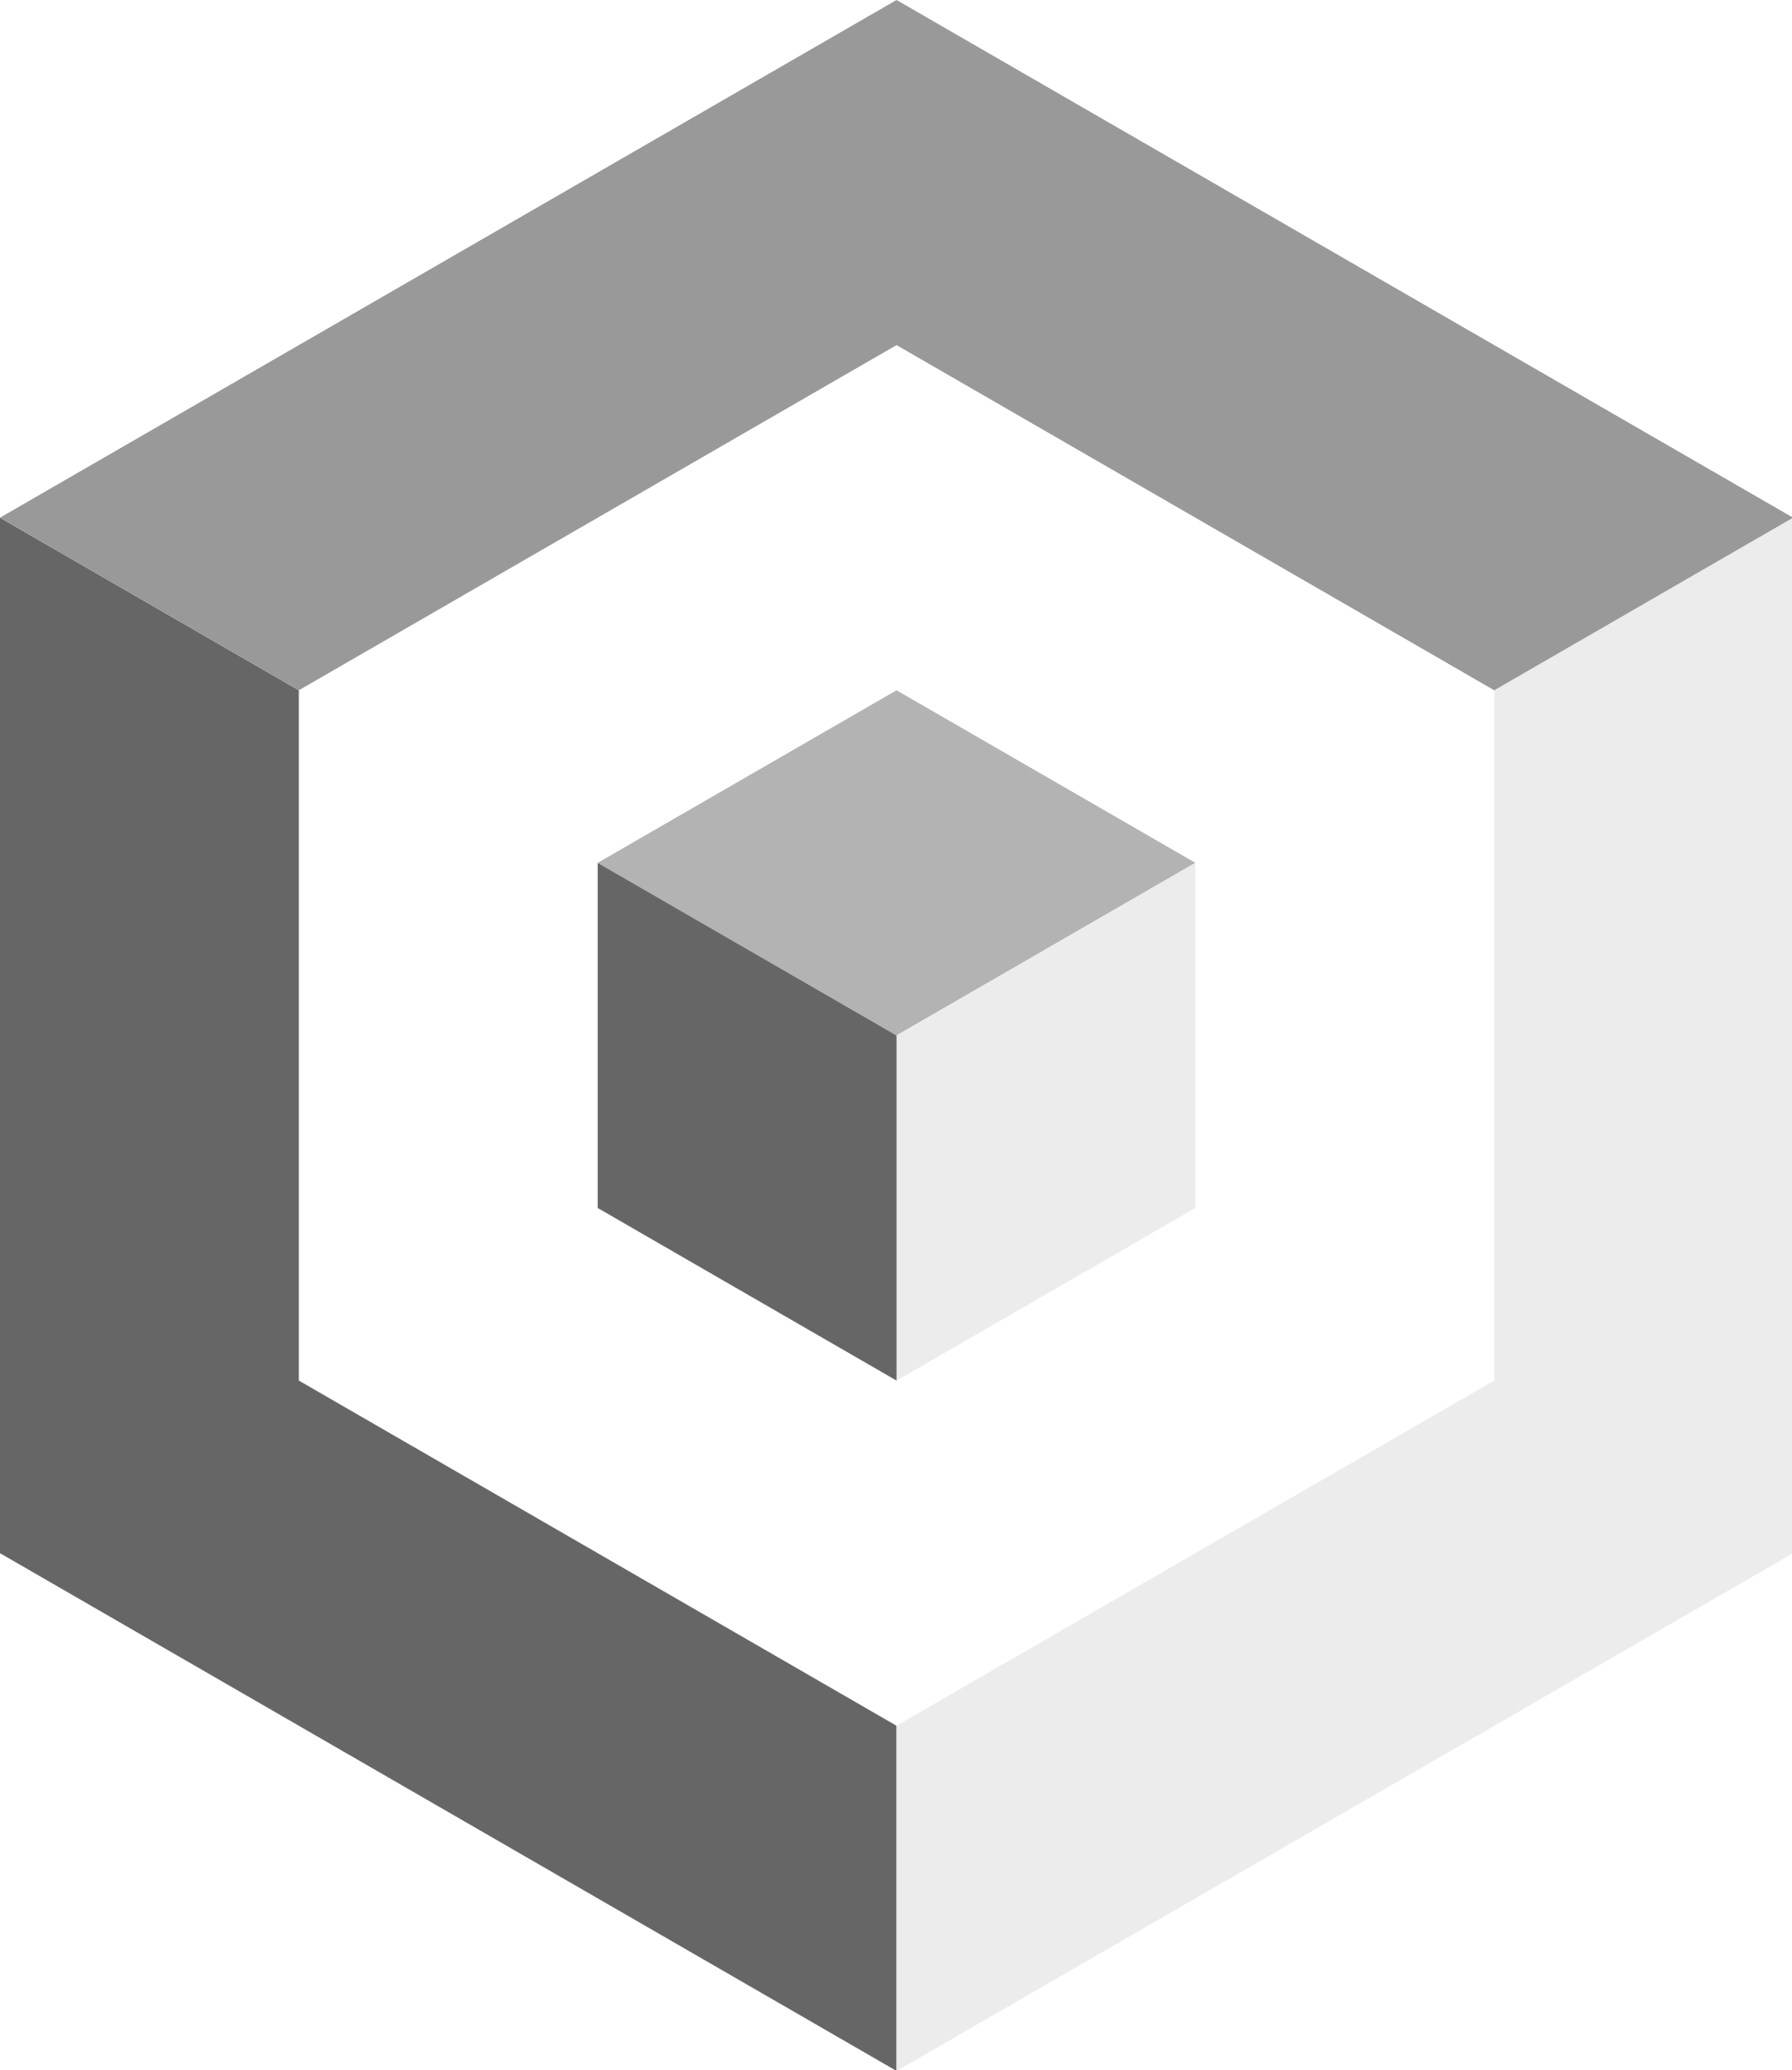 Cubes vector. File axonometric svg wikimedia